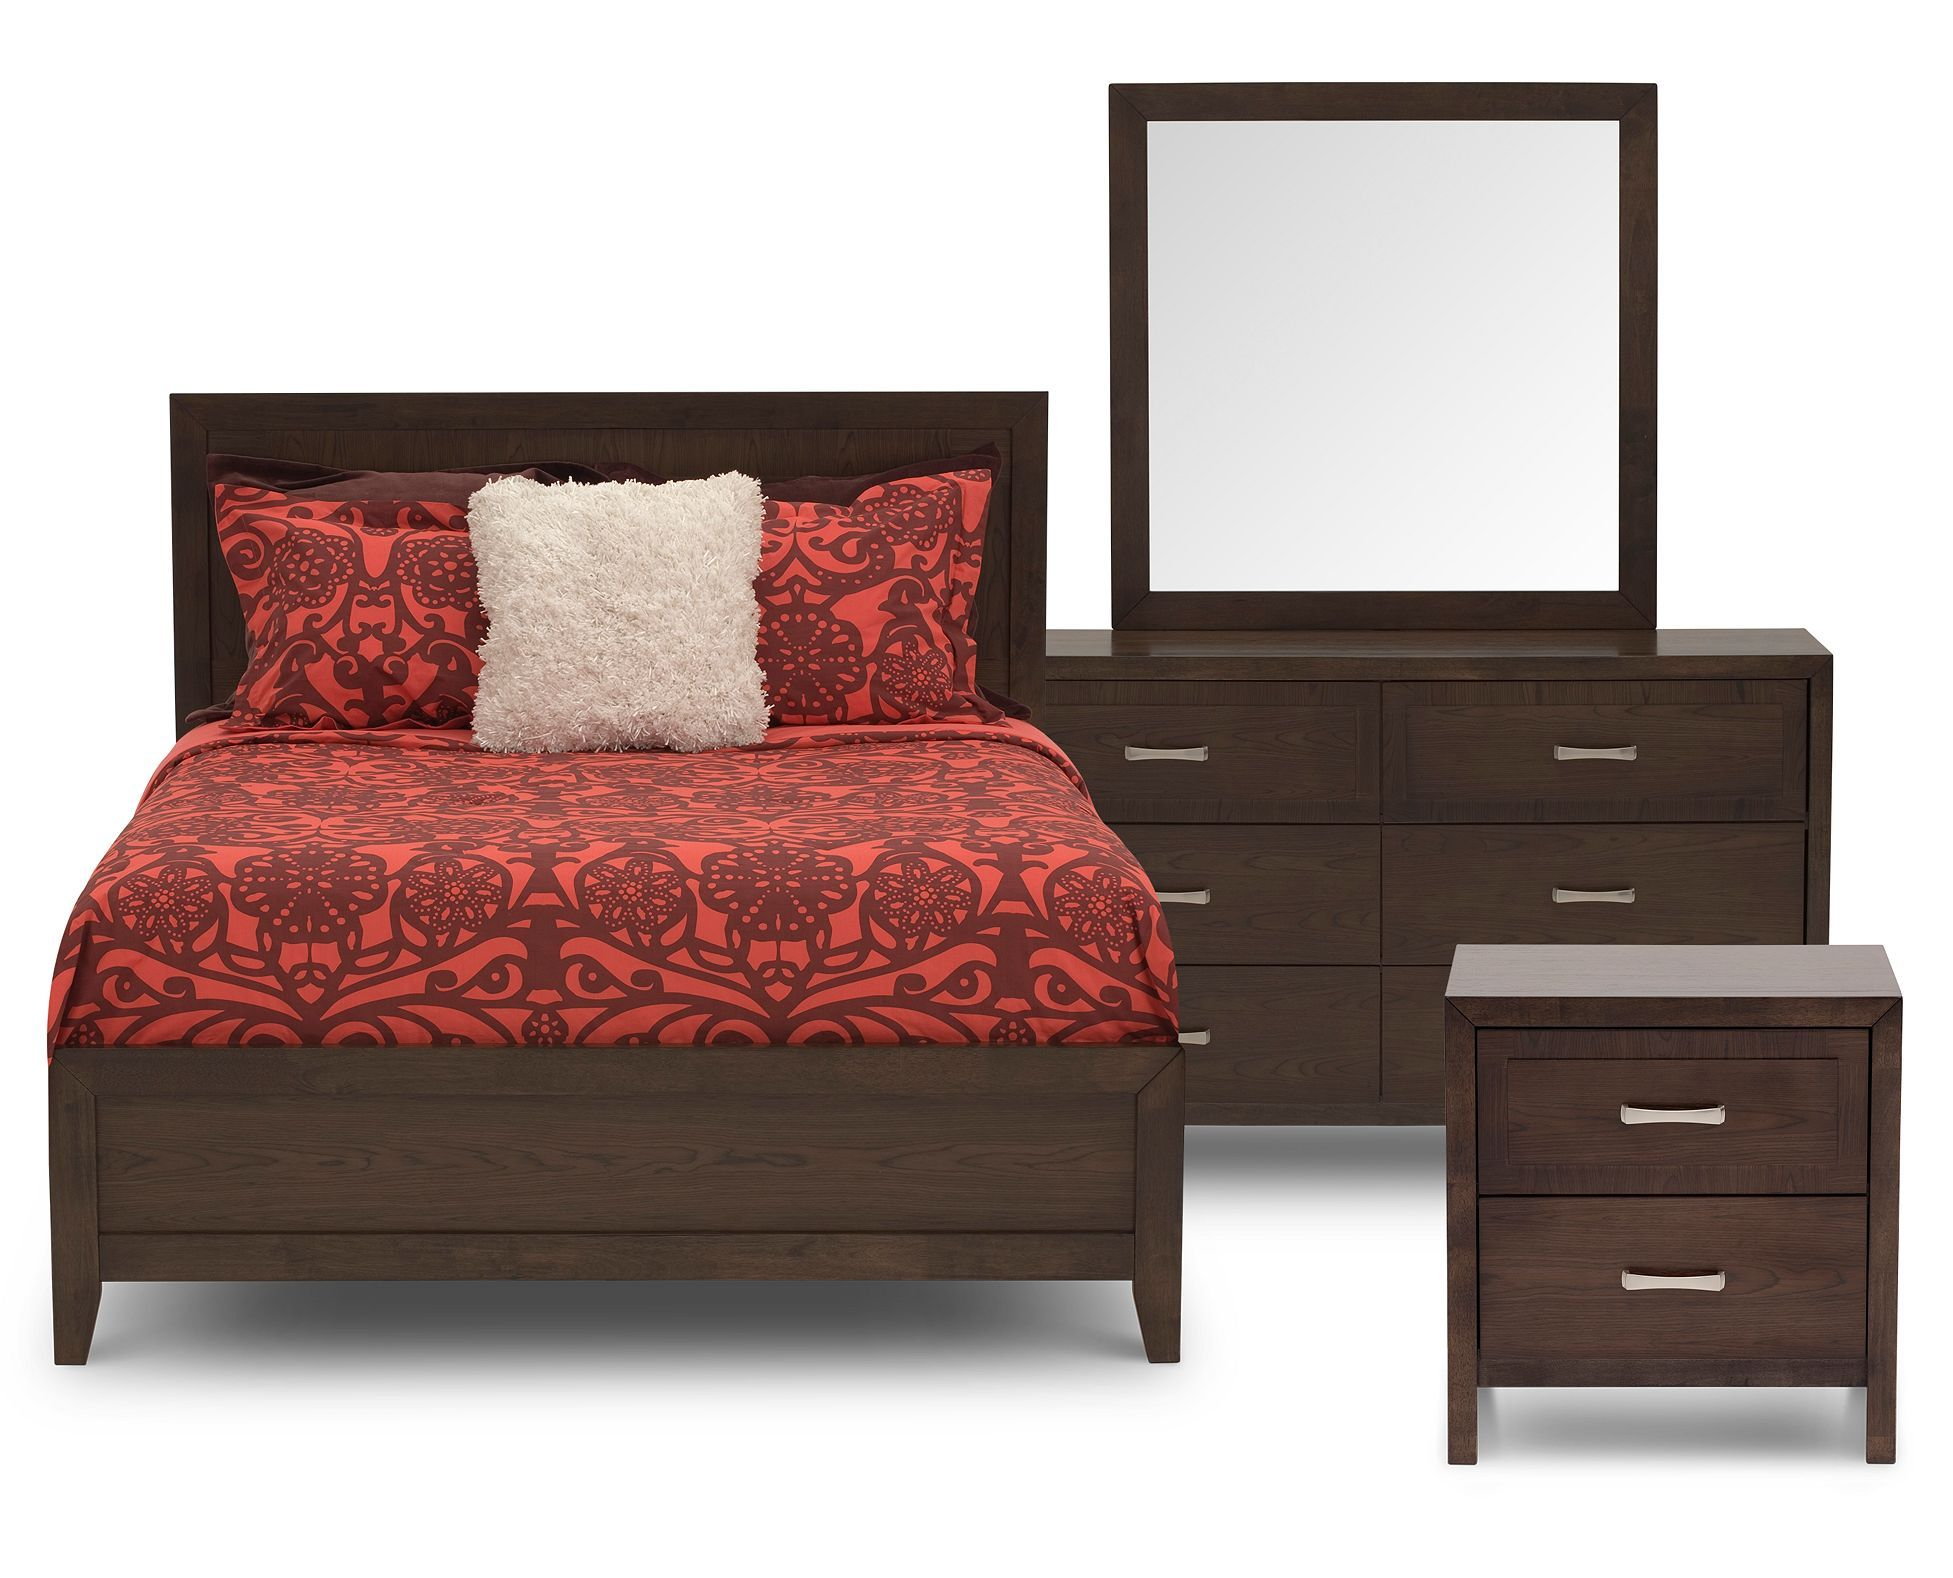 Miraculous Black Friday Save 500 On The Oslo 4 Piece Queen Bedroom Download Free Architecture Designs Rallybritishbridgeorg